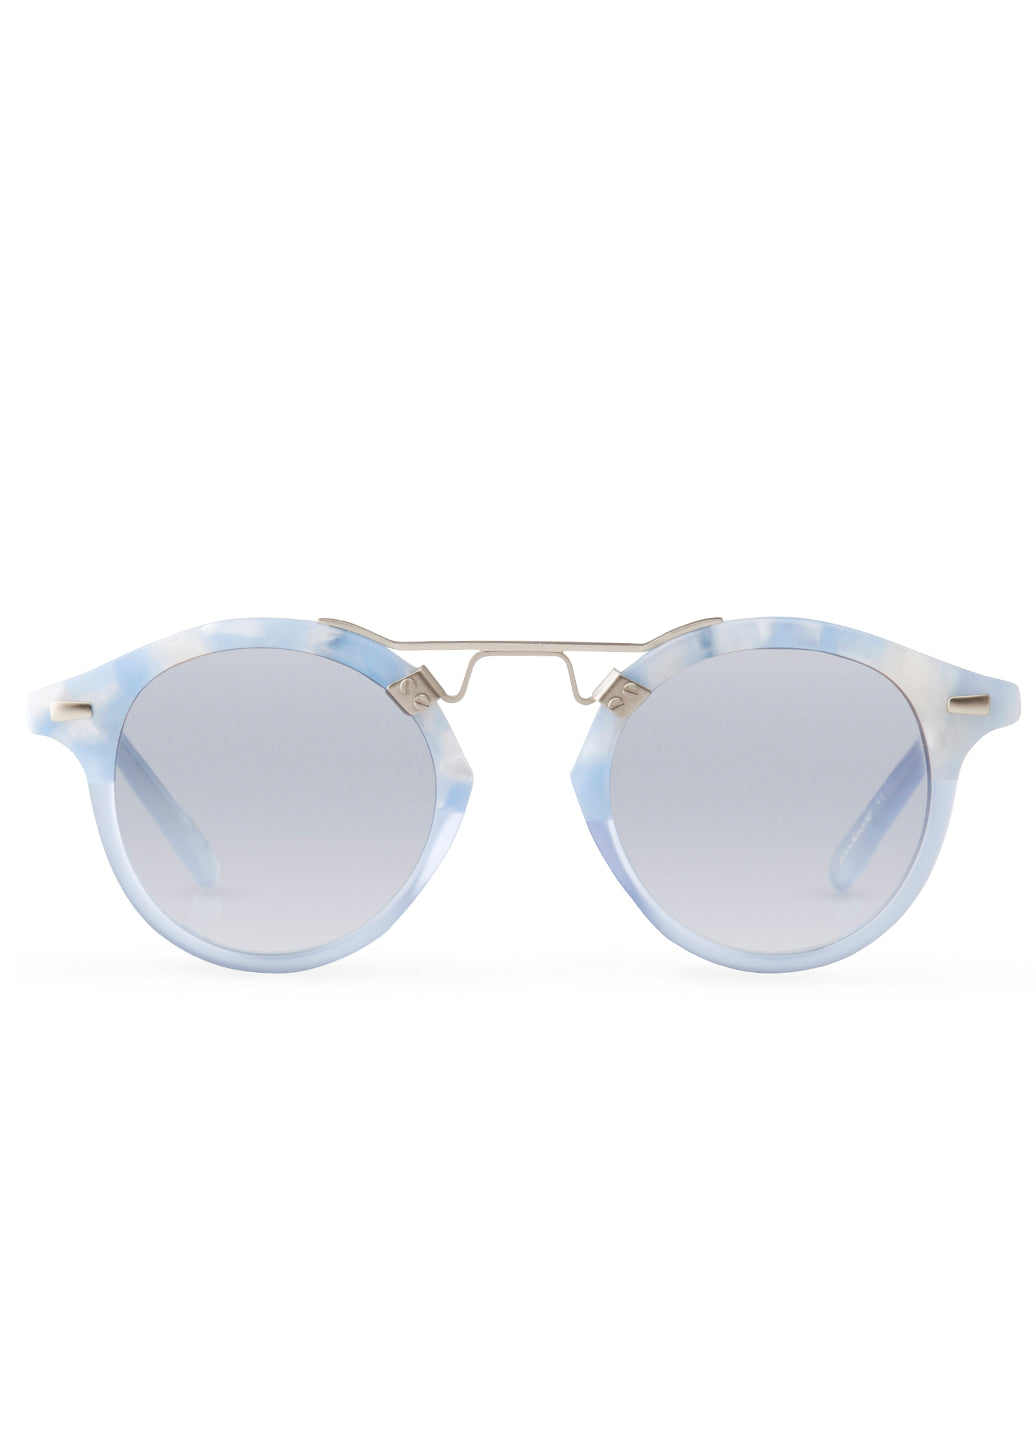 Krewe st. louis sunglasses matte ciel blue crystal